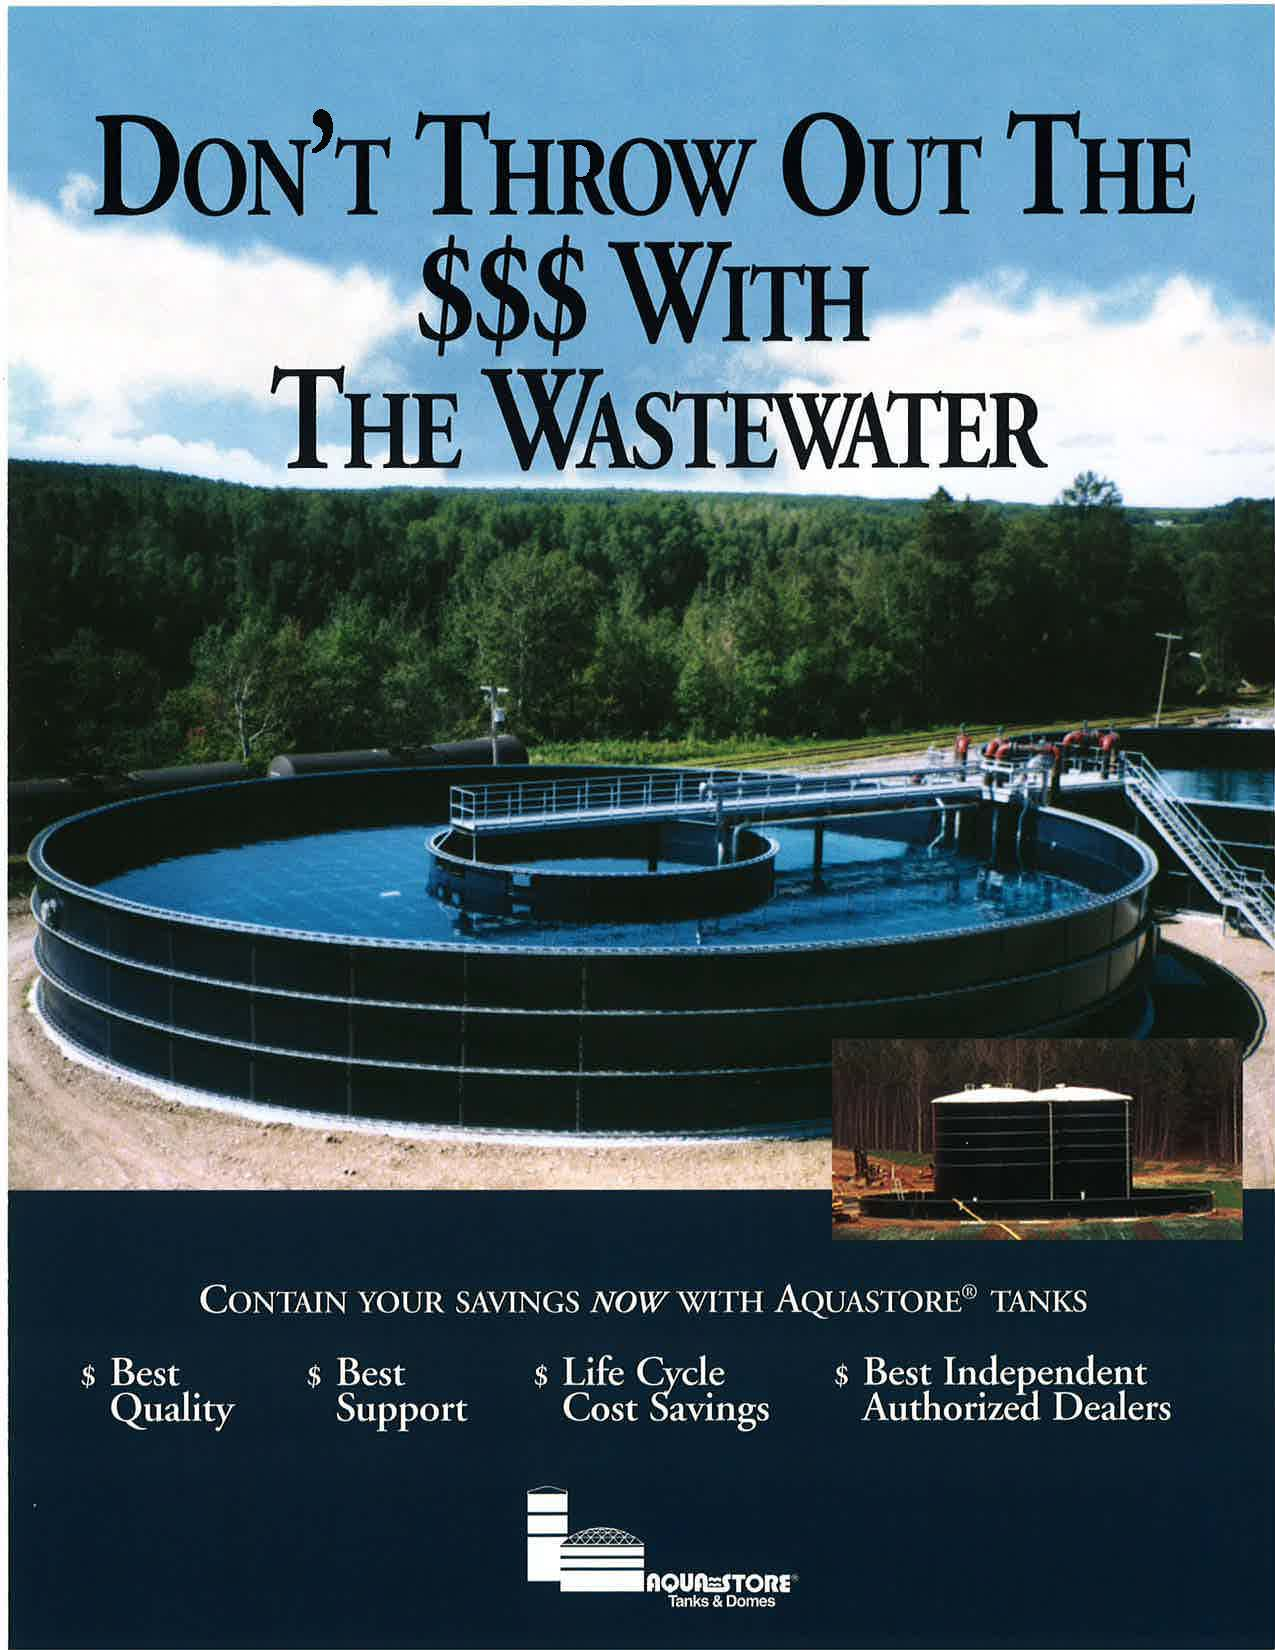 Don't throw out the $$$ with the Wastewater